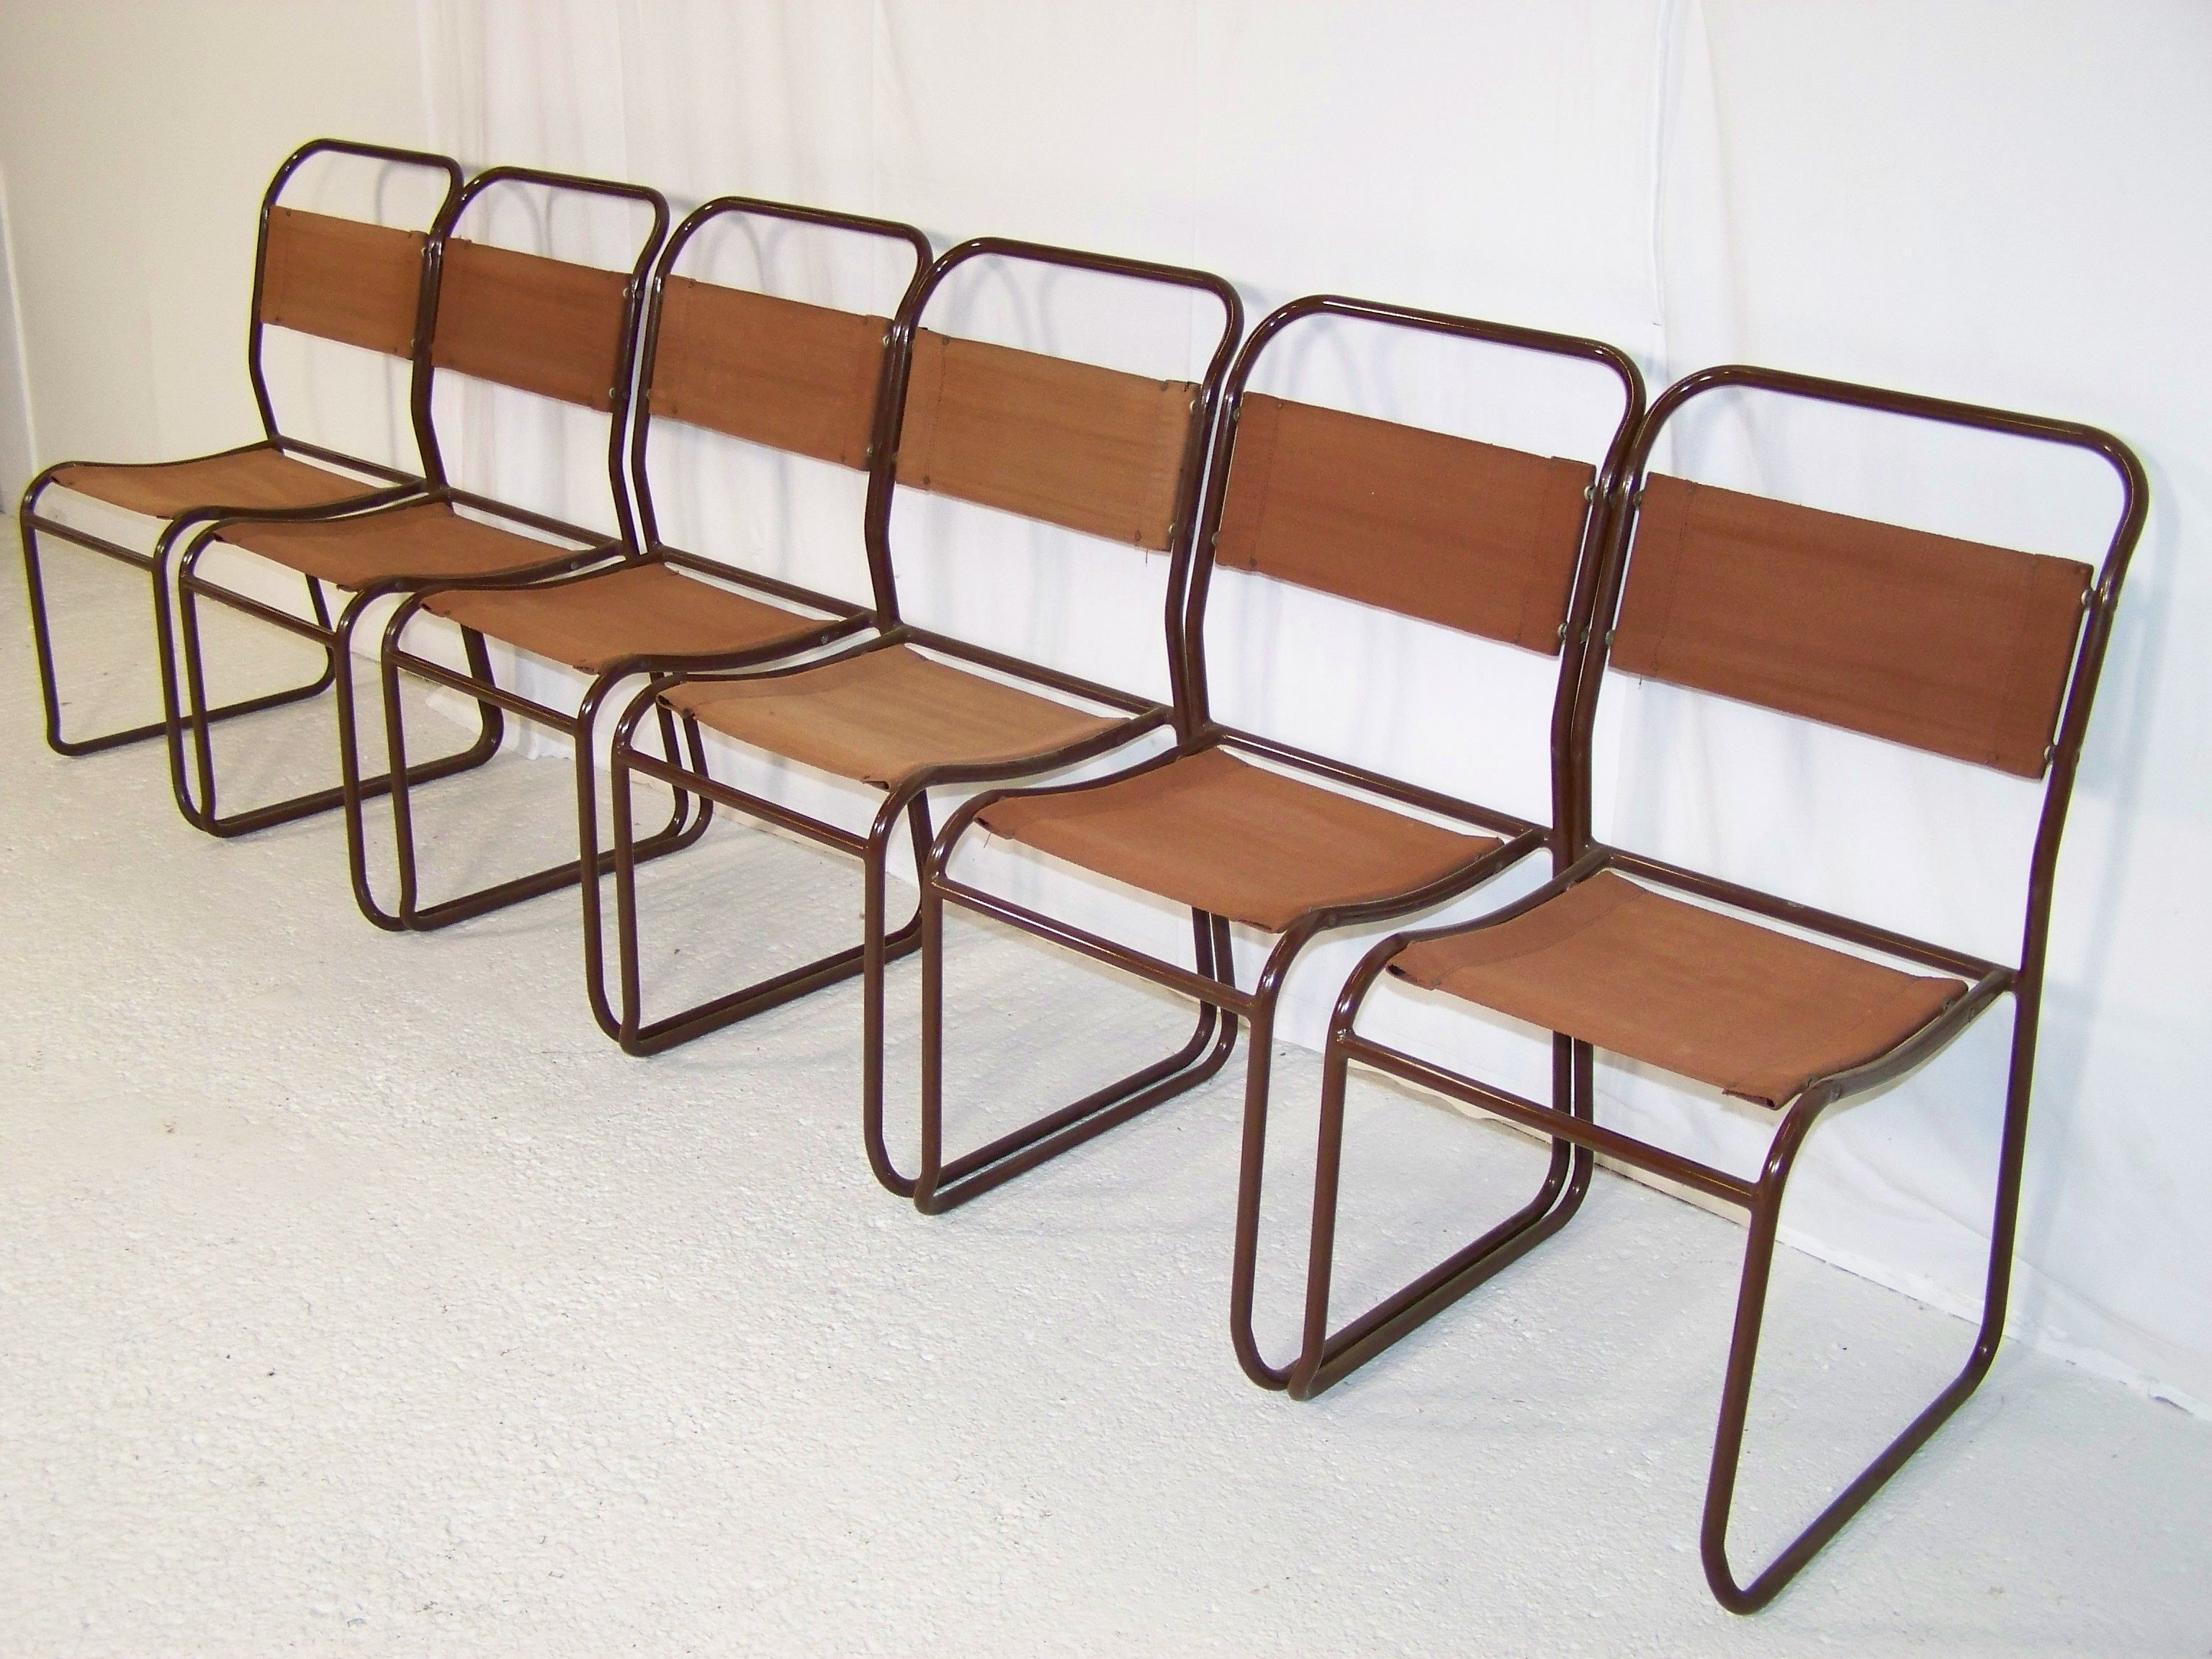 vintage bauhaus 1930s PEL stacking tubular metal and canvas chairs